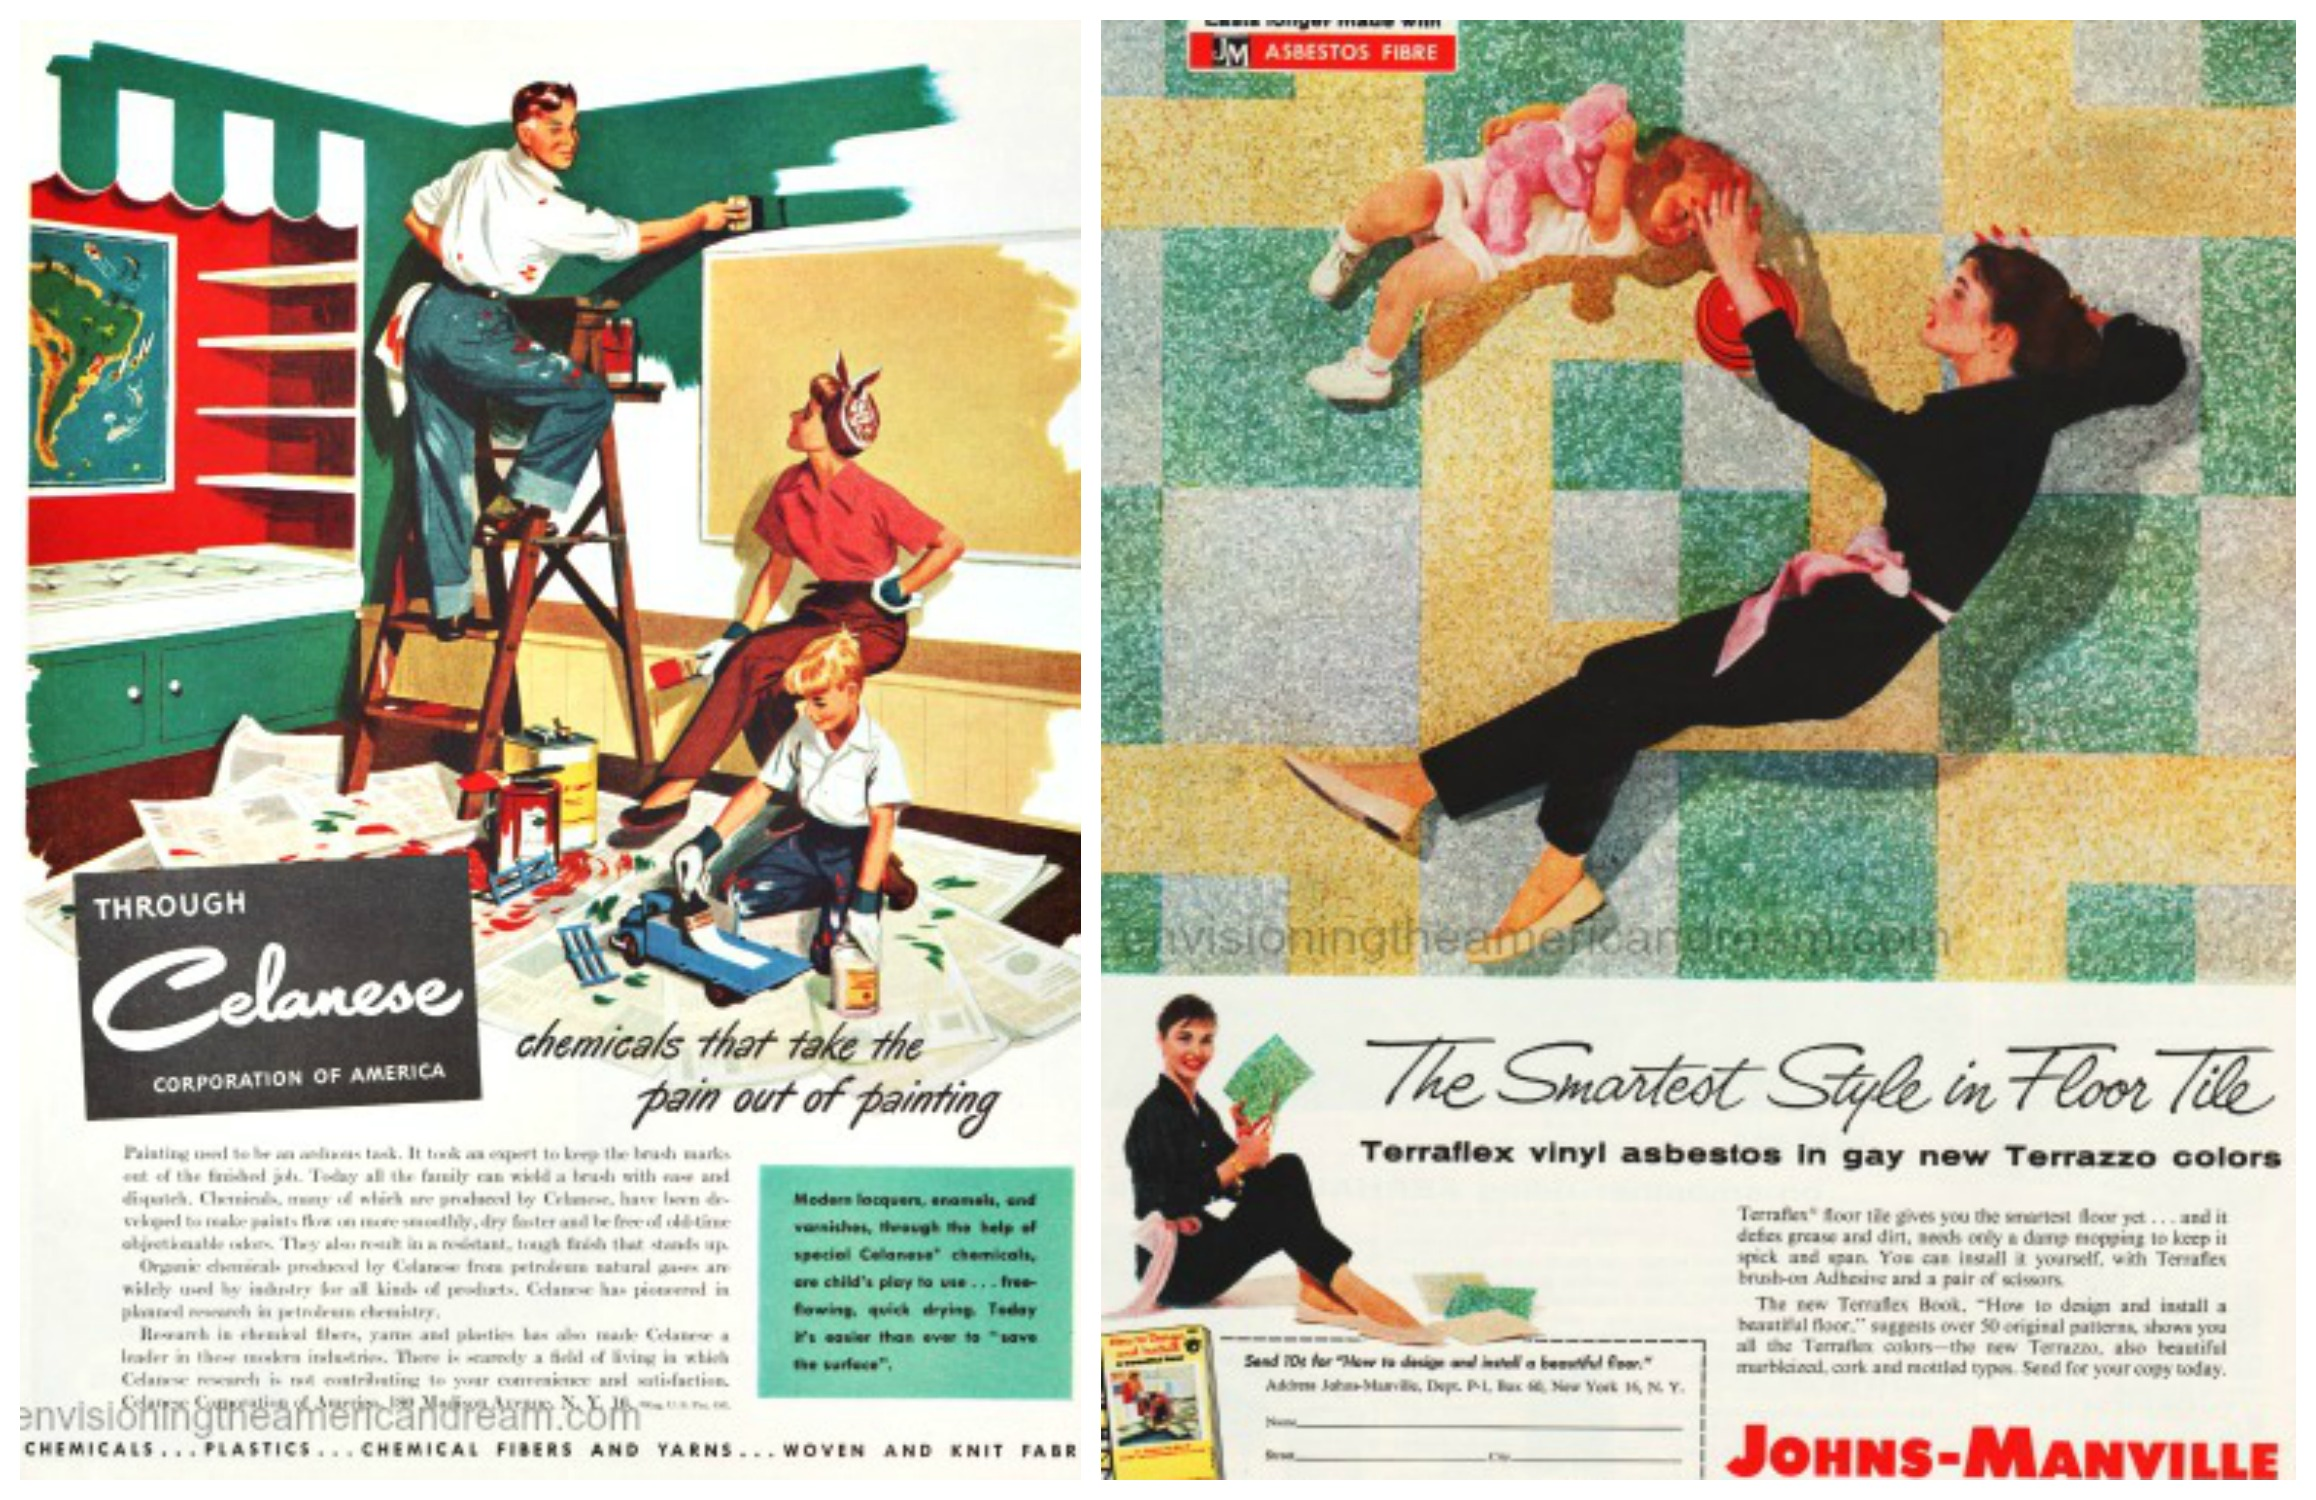 Vintage ads (L) Celanese Fine Family of Chemicals (R) Johns-Manville Asbestos tiles in gay new colors 1957